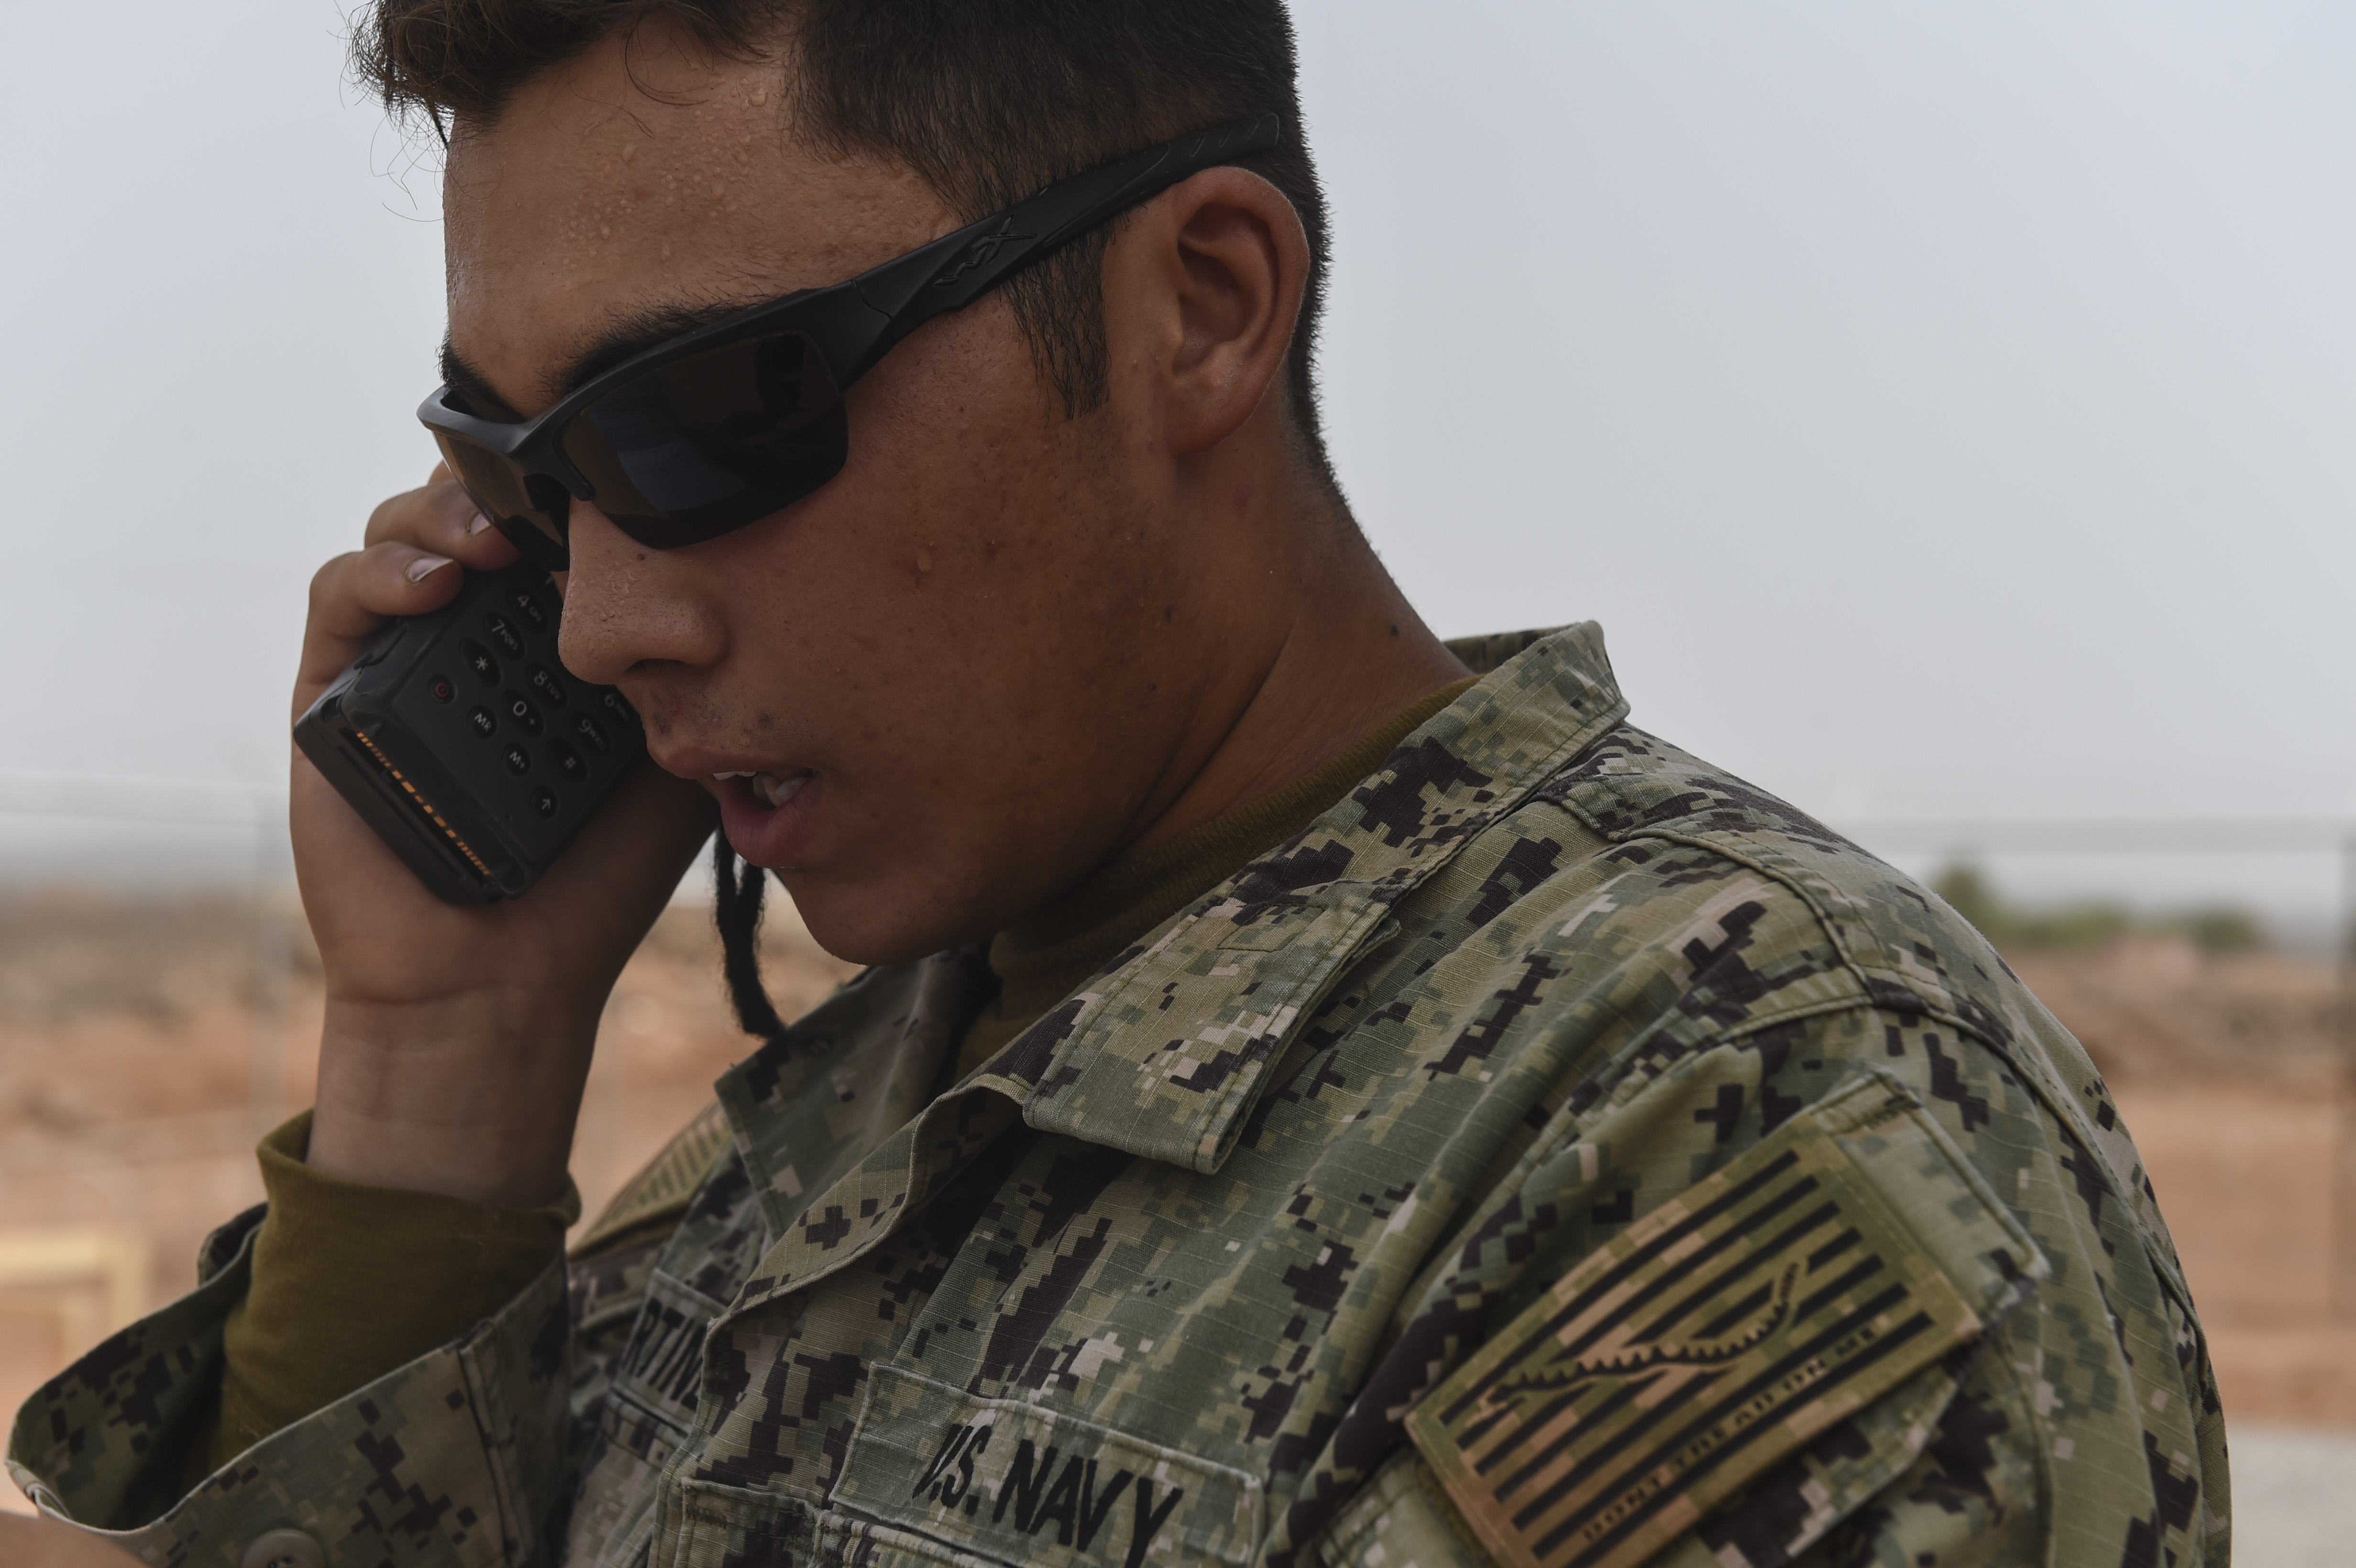 U.S. Navy Petty Officer 3rd Class Jesse Martinez from the Naval Mobile Construction Battalion One, a maneuver unit of the Combined Joint Task Force-Horn of Africa, uses a radio to call the French Air Force Tactical Airlift Squadron 88 for assistance with medical evacuation during a bilateral exercise with French forces in the Arta region, July 19, 2017. CJTF-HOA partners with French counterparts to strengthen regional cooperation and interoperability, enhancing the mutual ability to conduct operations in the region. (U.S. Air Force photo by Staff Sgt. Eboni Prince)